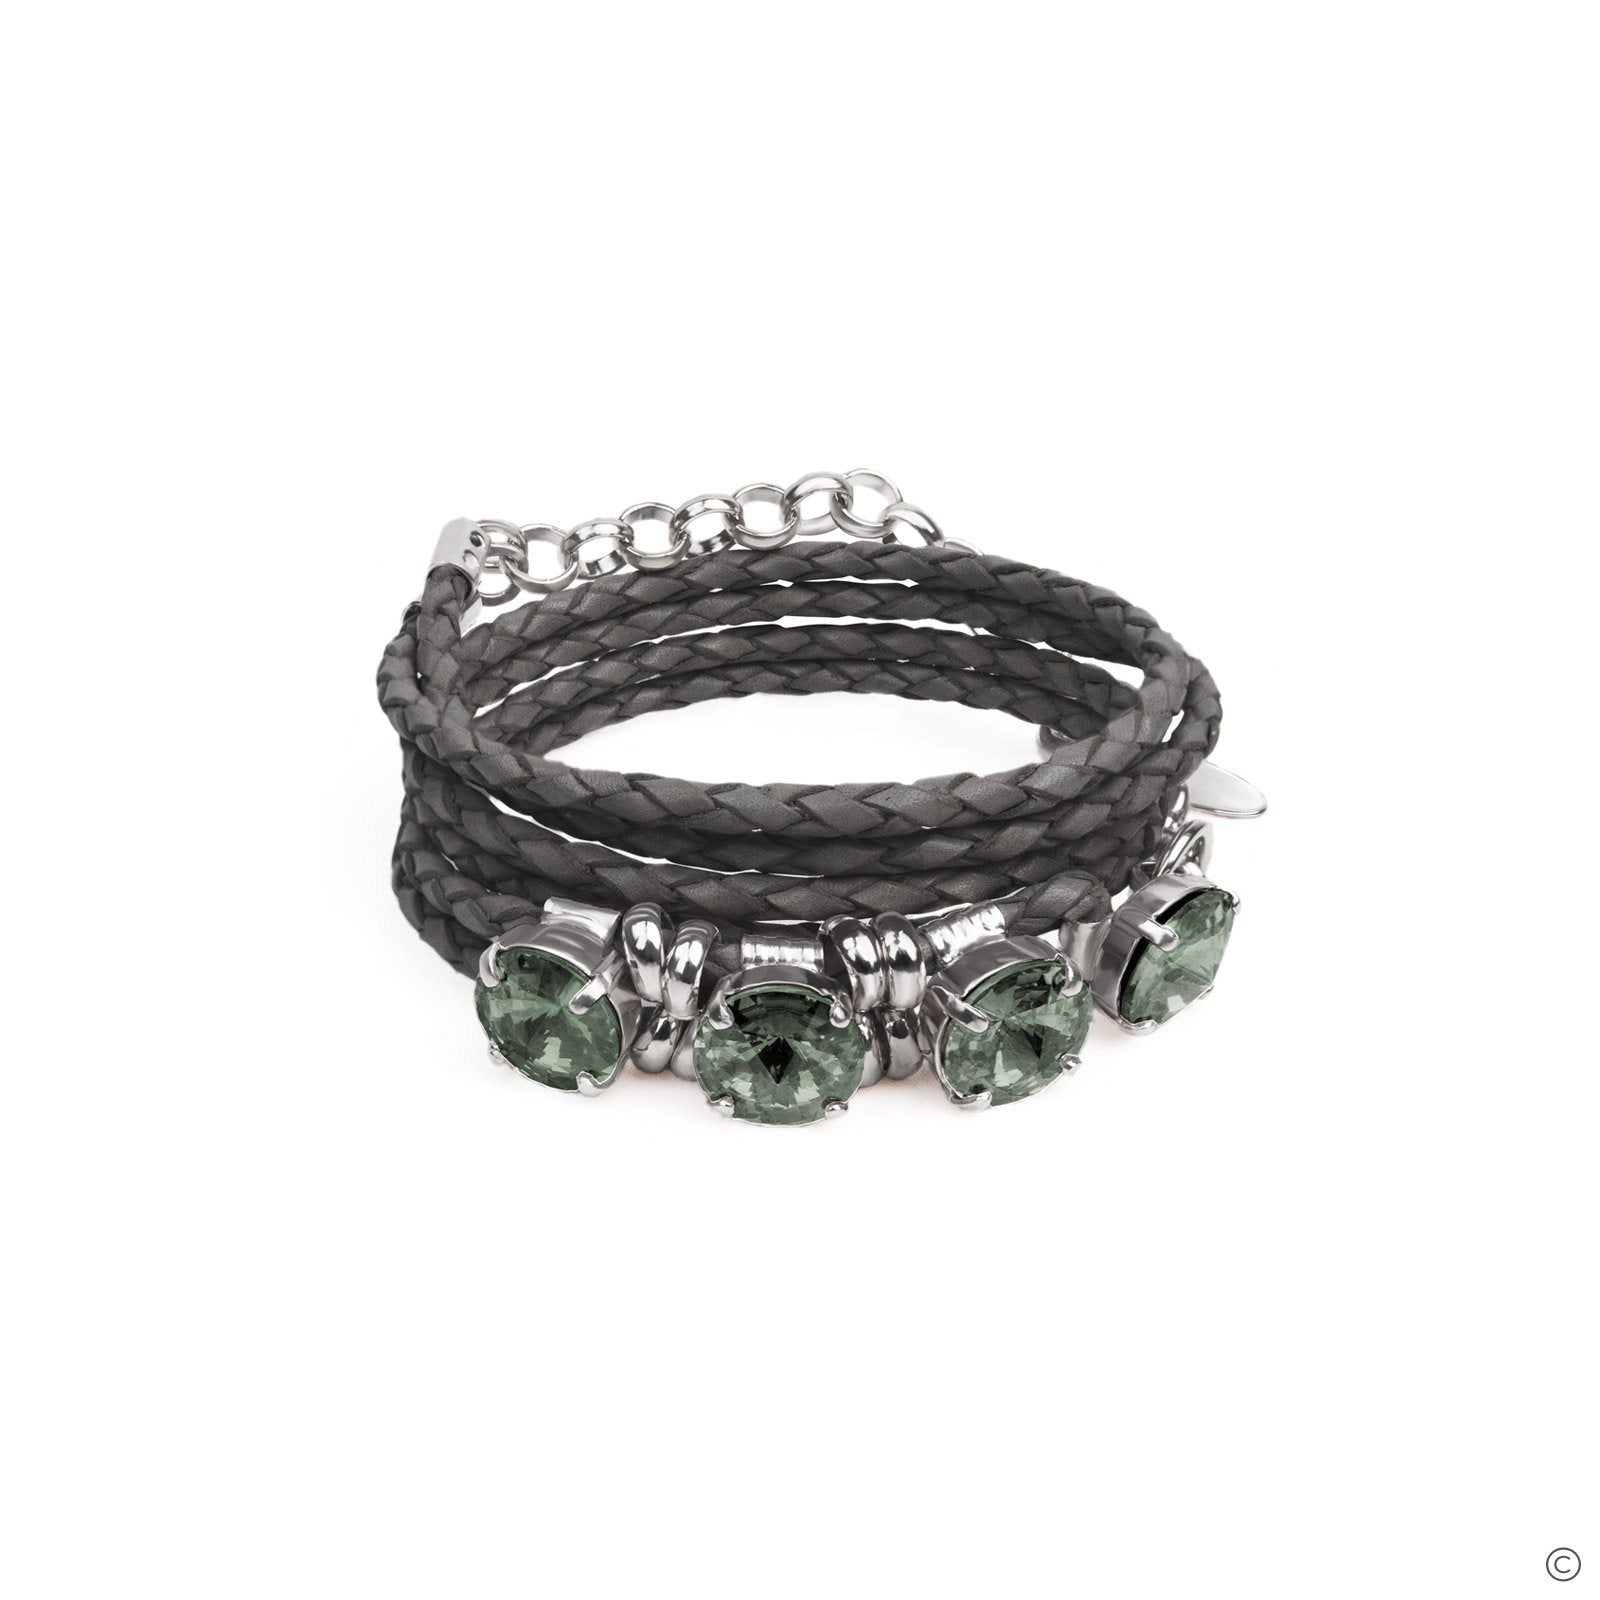 Gemstone Leather Bracelet - Gray & Silver